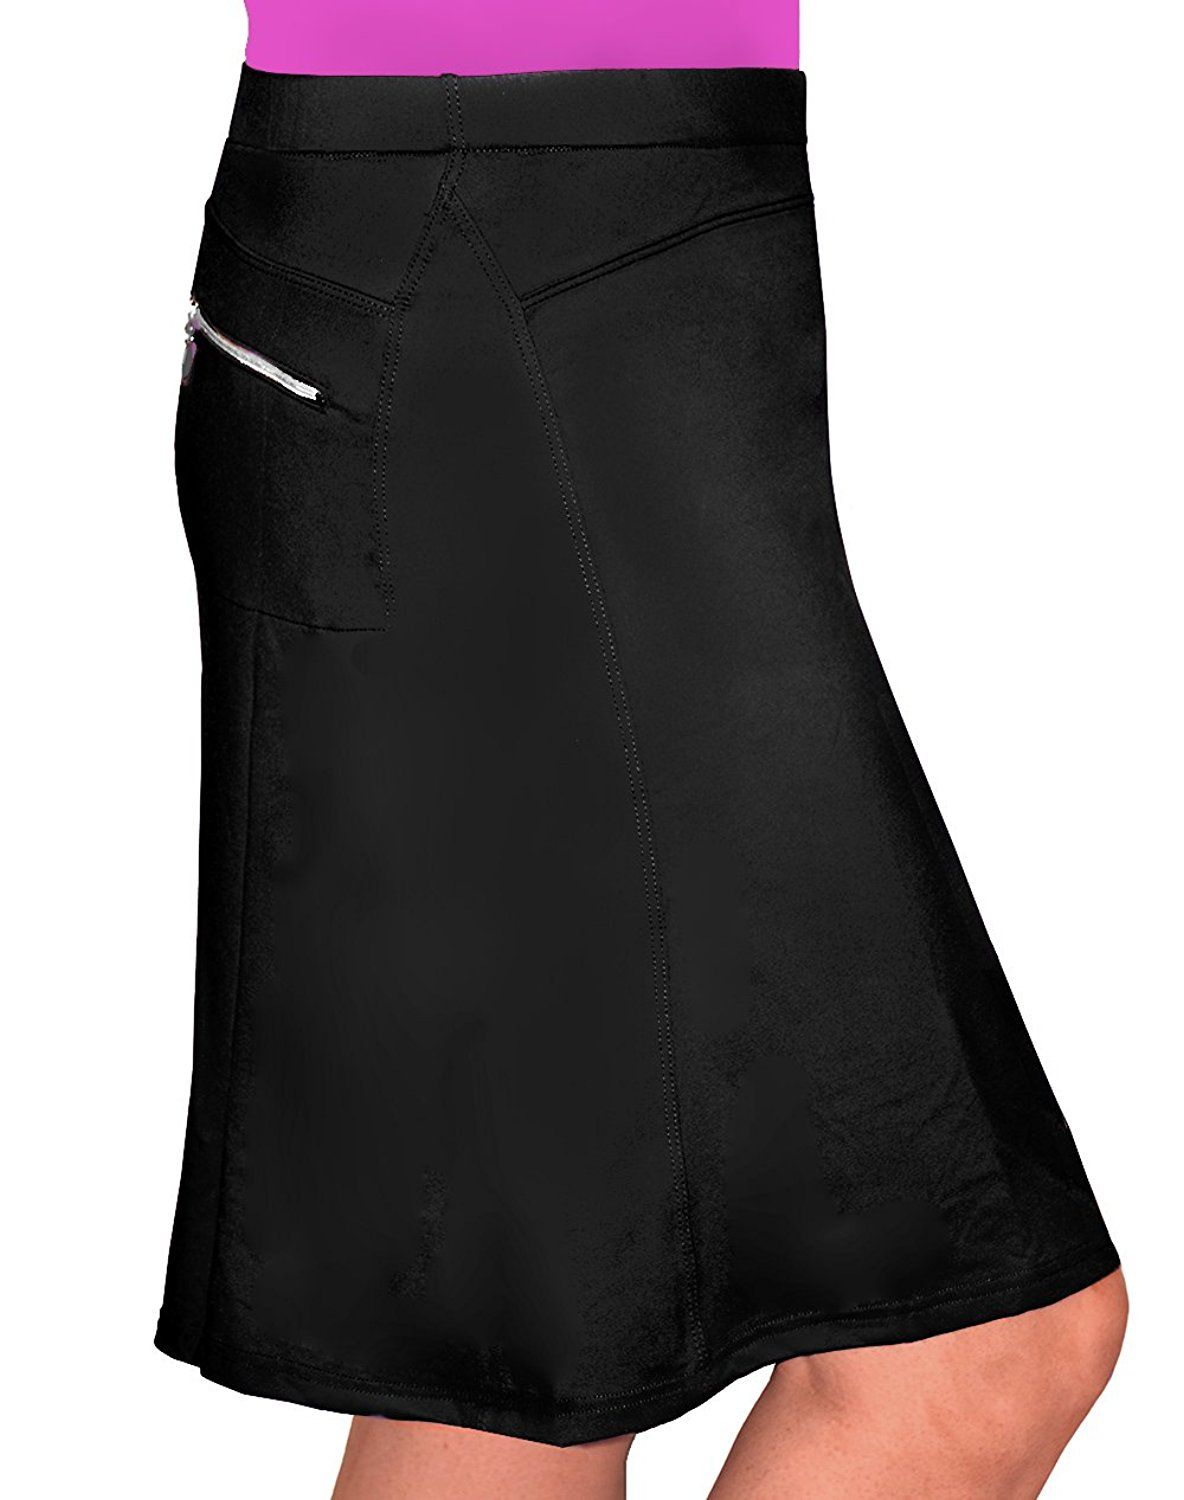 38995b63768 Kosher Casual Women s Modest Knee-Length Workout Sport Skirt With Built-In  Shorts at Amazon Women s Clothing store